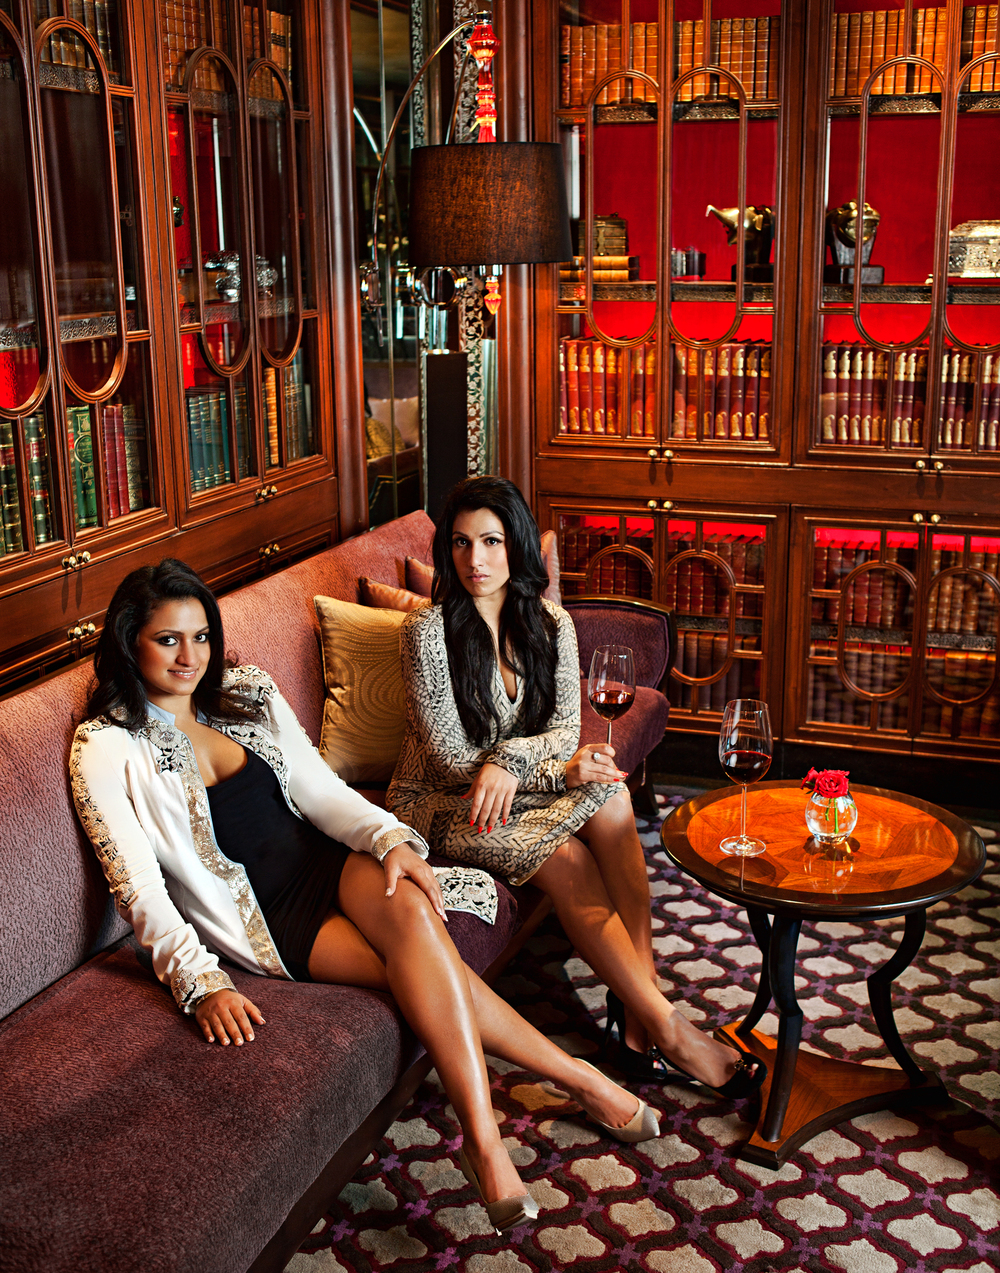 Amruda and Aishwarya Nair at the Leela New Delhi, Harper's Bazaar India. Their family owns the Leela Palaces. TOO INDIAN!